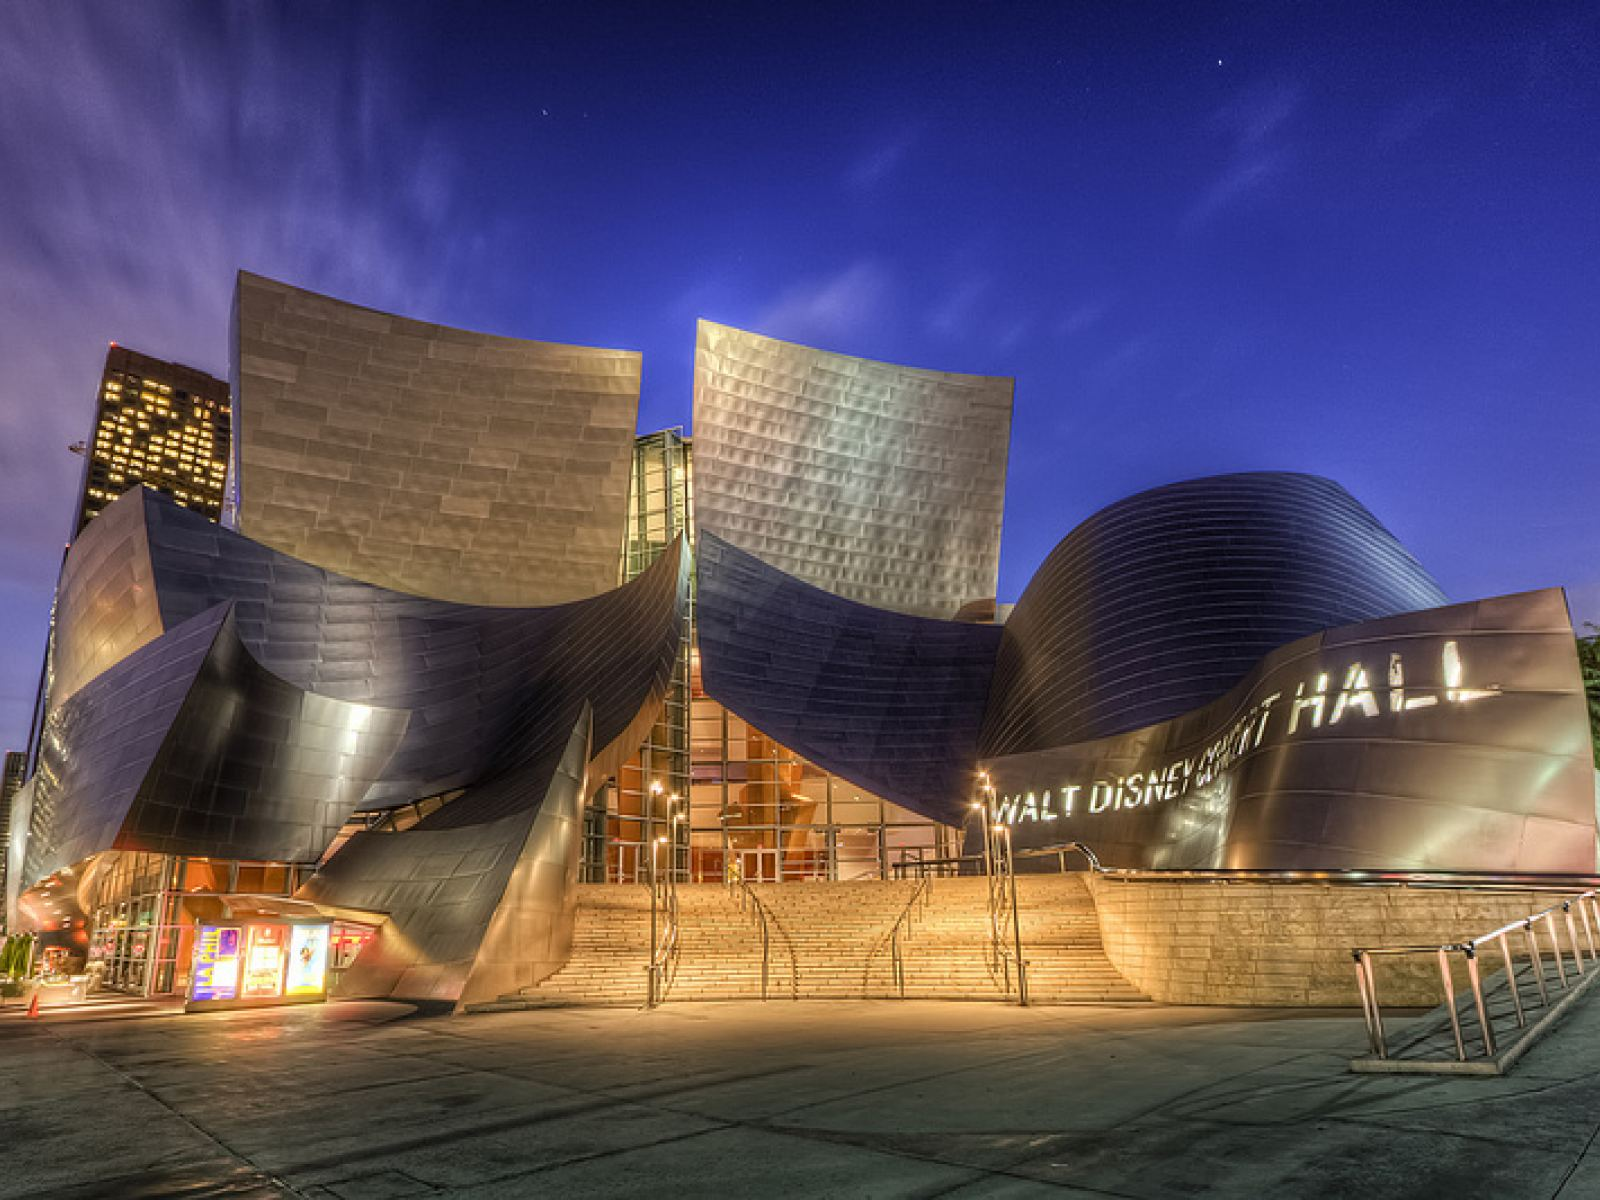 Main image for article titled Walt Disney Concert Hall: A Los Angeles Cultural Icon